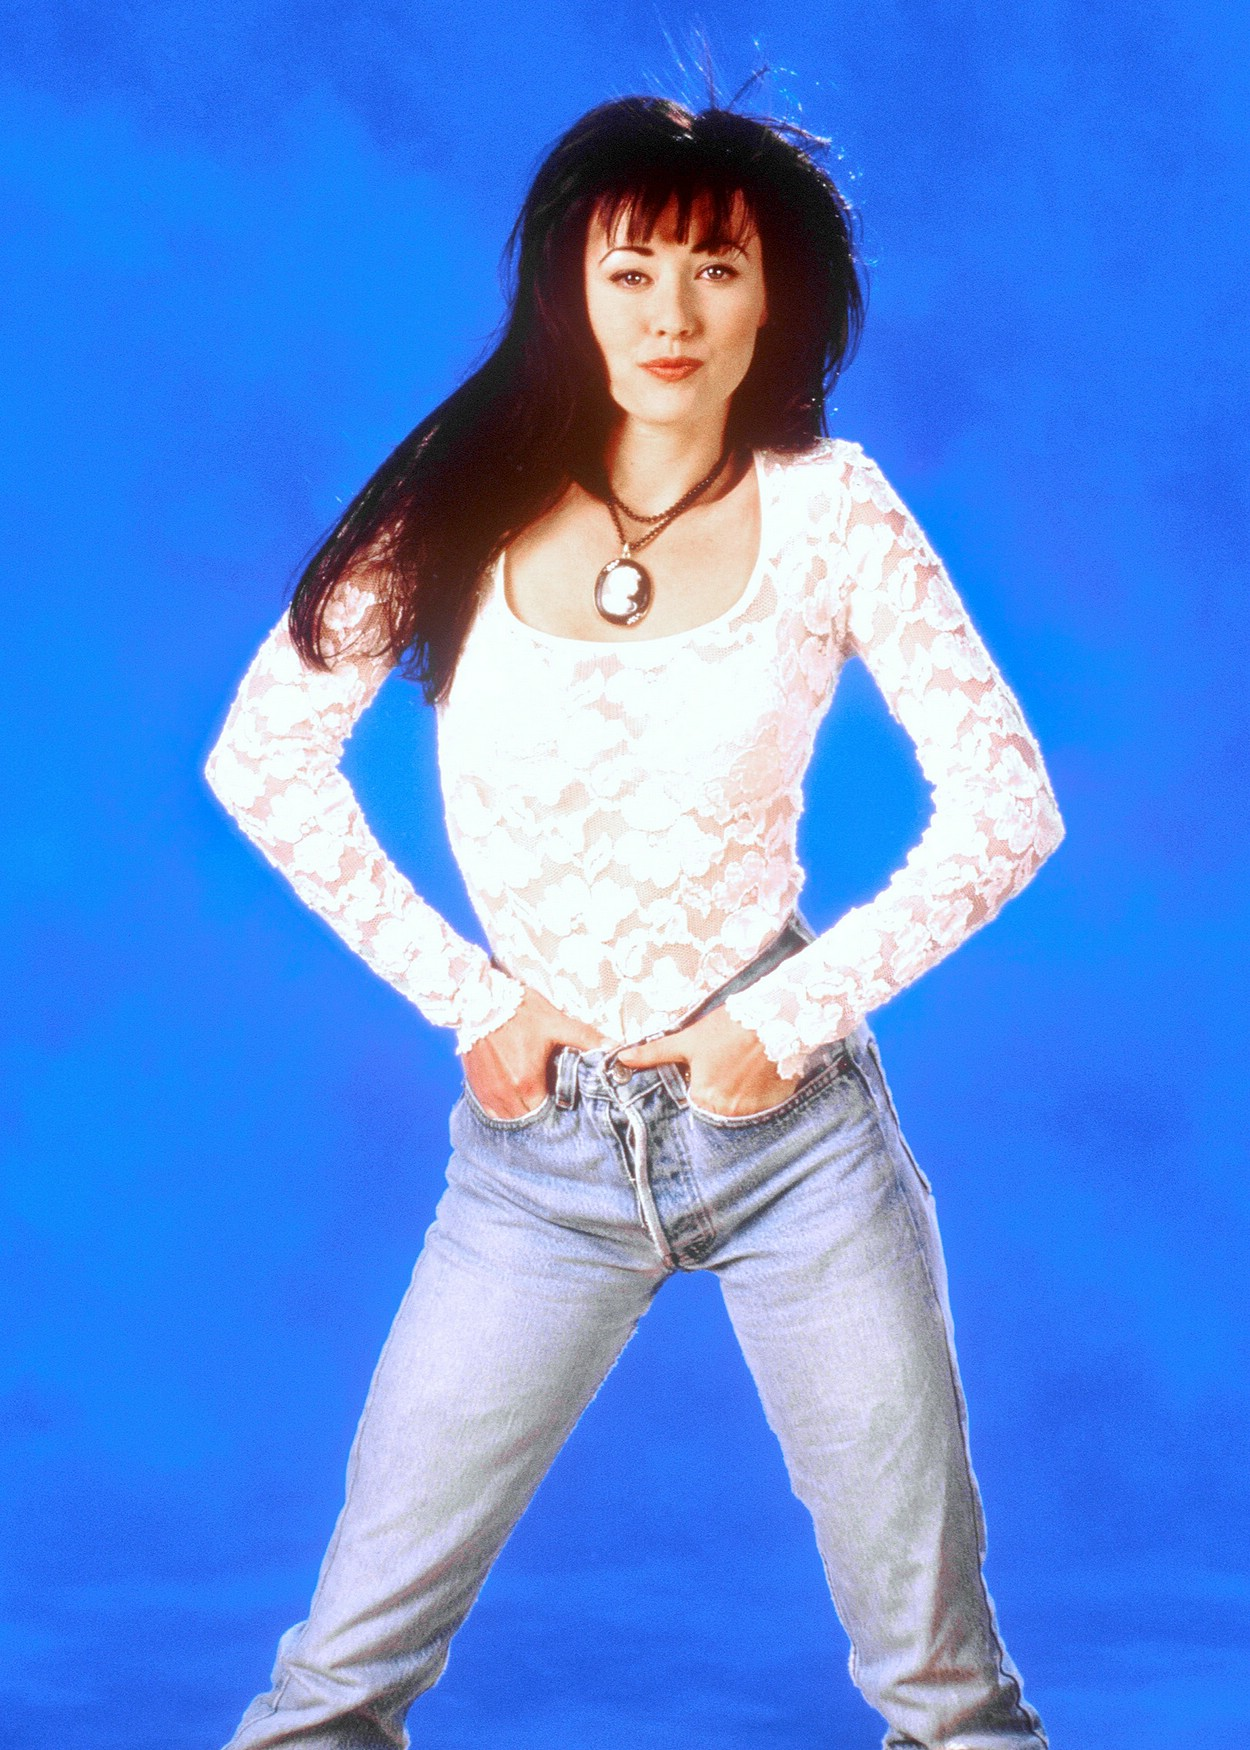 Apologise, but, teen picture of shannen doherty pity